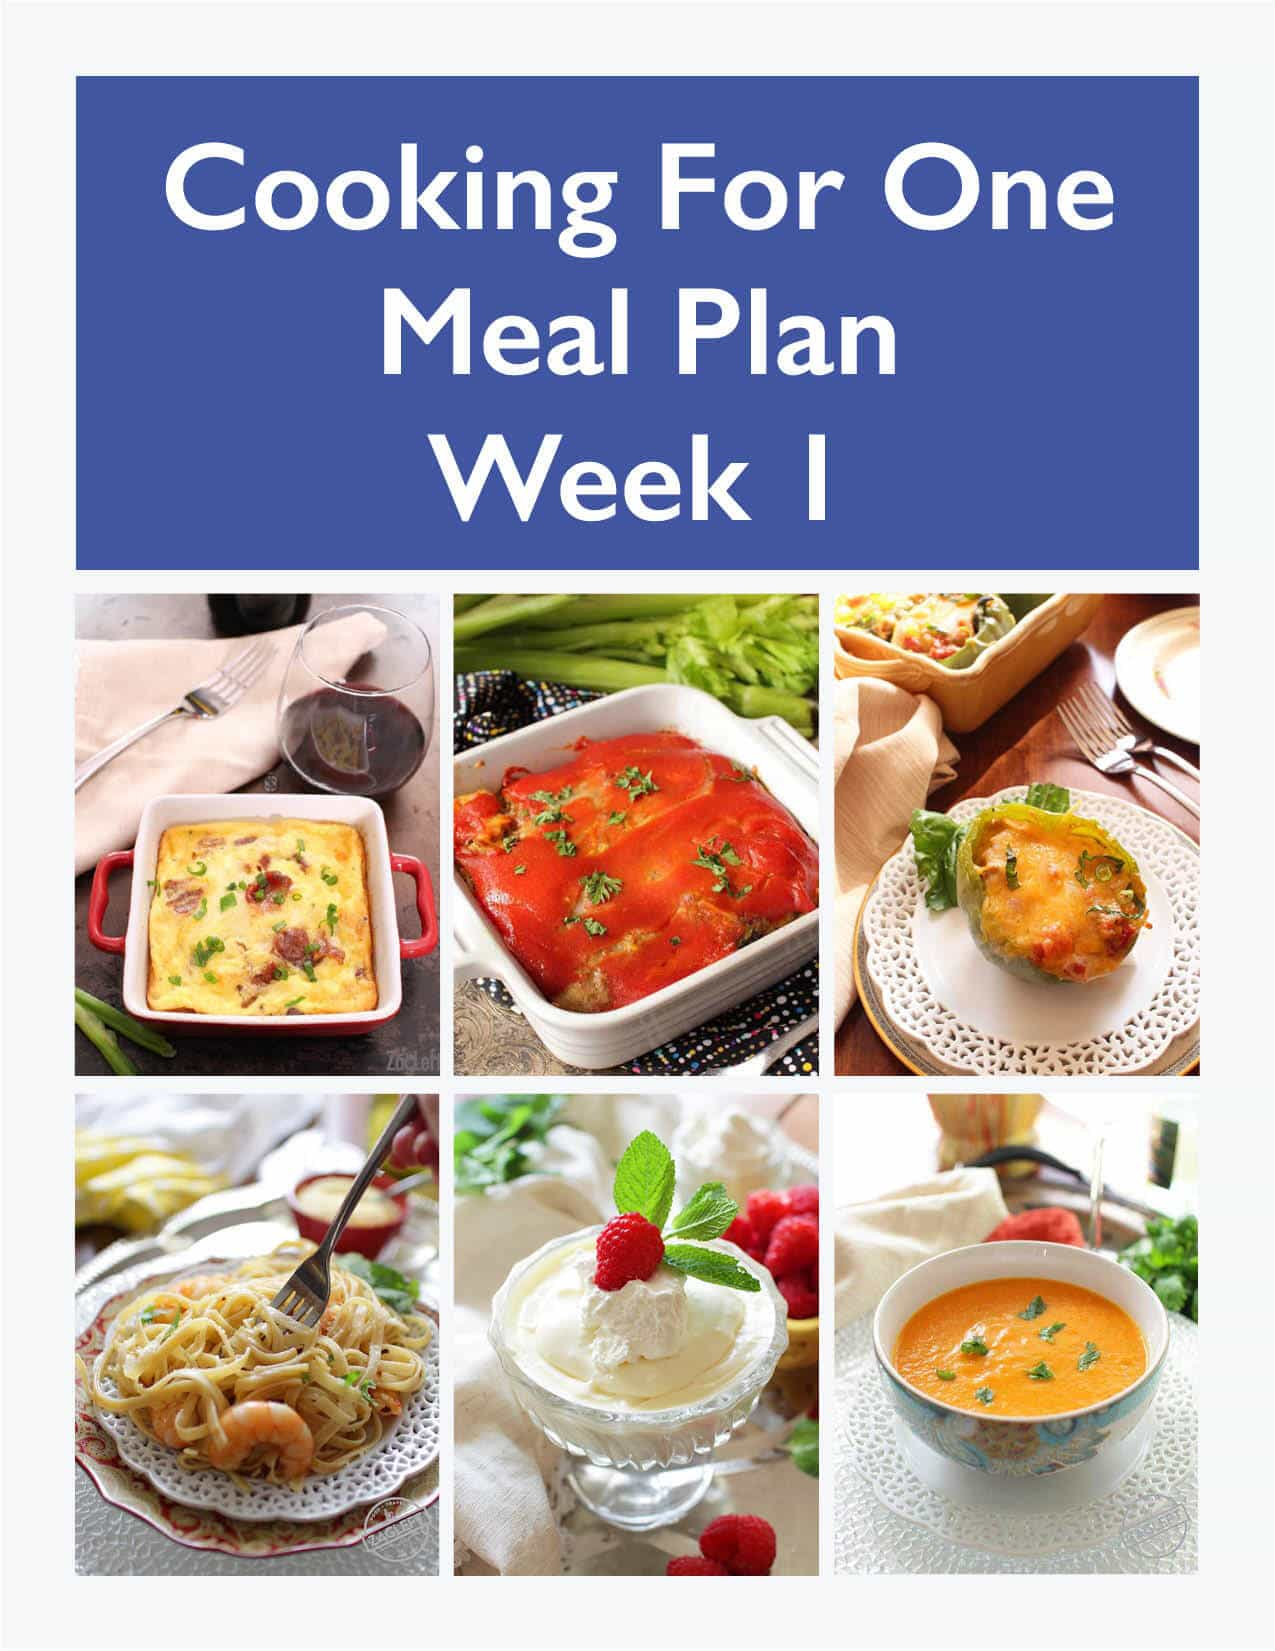 Weekly Meal Planning for One, Week 1 meal plan includes recipes, a grocery list and cooking tips. These meal plans are ideal for anyone cooking for one or two people and is designed for people who live on their own, a parent who wants to indulge themselves while their kids have their favorites, couples that can't agree on what they want for dinner or caregivers providing meals to a parent or friend. | One Dish Kitchen